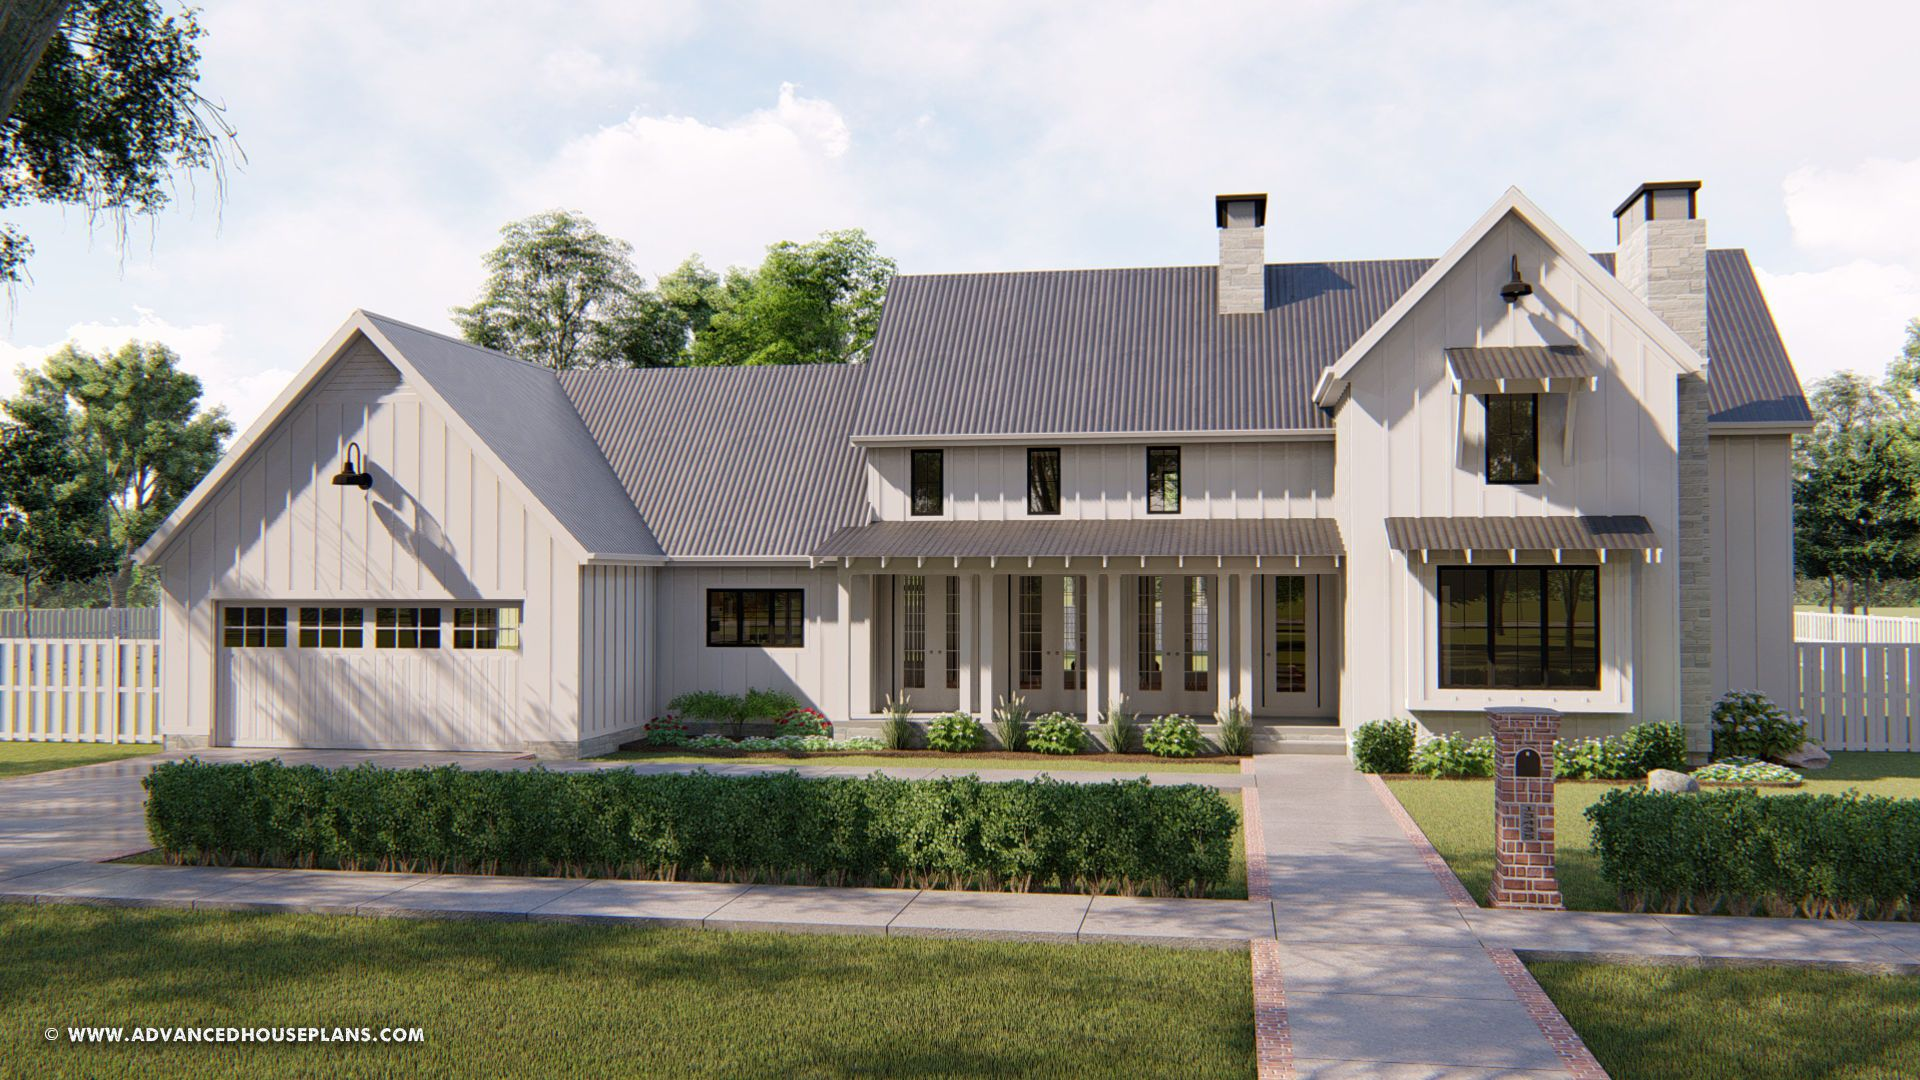 1.5 Story Modern Farmhouse Plan | Rosewood in 2019 | Modern ... on styles of screened in porches, two-story small house plans, two-story house styles, country homes with porches, two-story white house, two-story cottage floor plans, two-story craftsman house plans, two-story ranch house plans, victorian porches, two-story square house plan, two-story beach house plans, homes with small porches, two-story house with pool, two-story house types, ranch homes with front porches, two-story modern homes, two-story narrow lot house plans, two-story tree house, two-story house with porch,